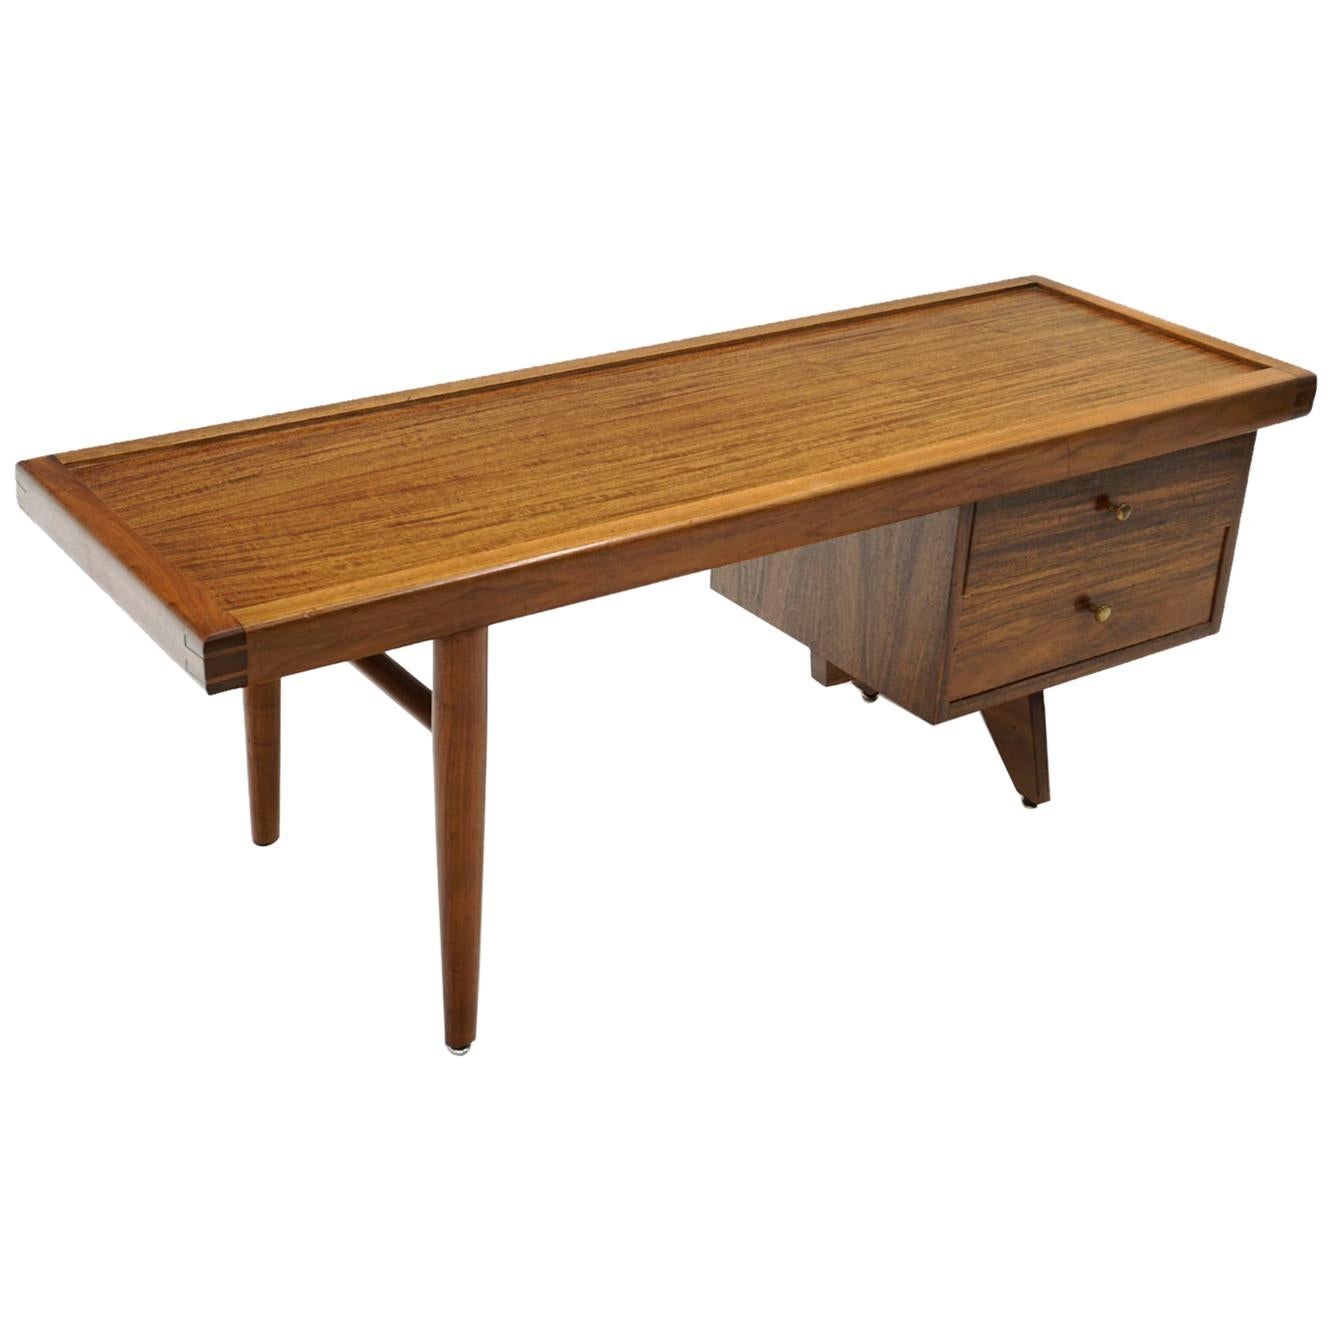 Coffee Table by George Nakashima for his Sundra Series for Widdicomb